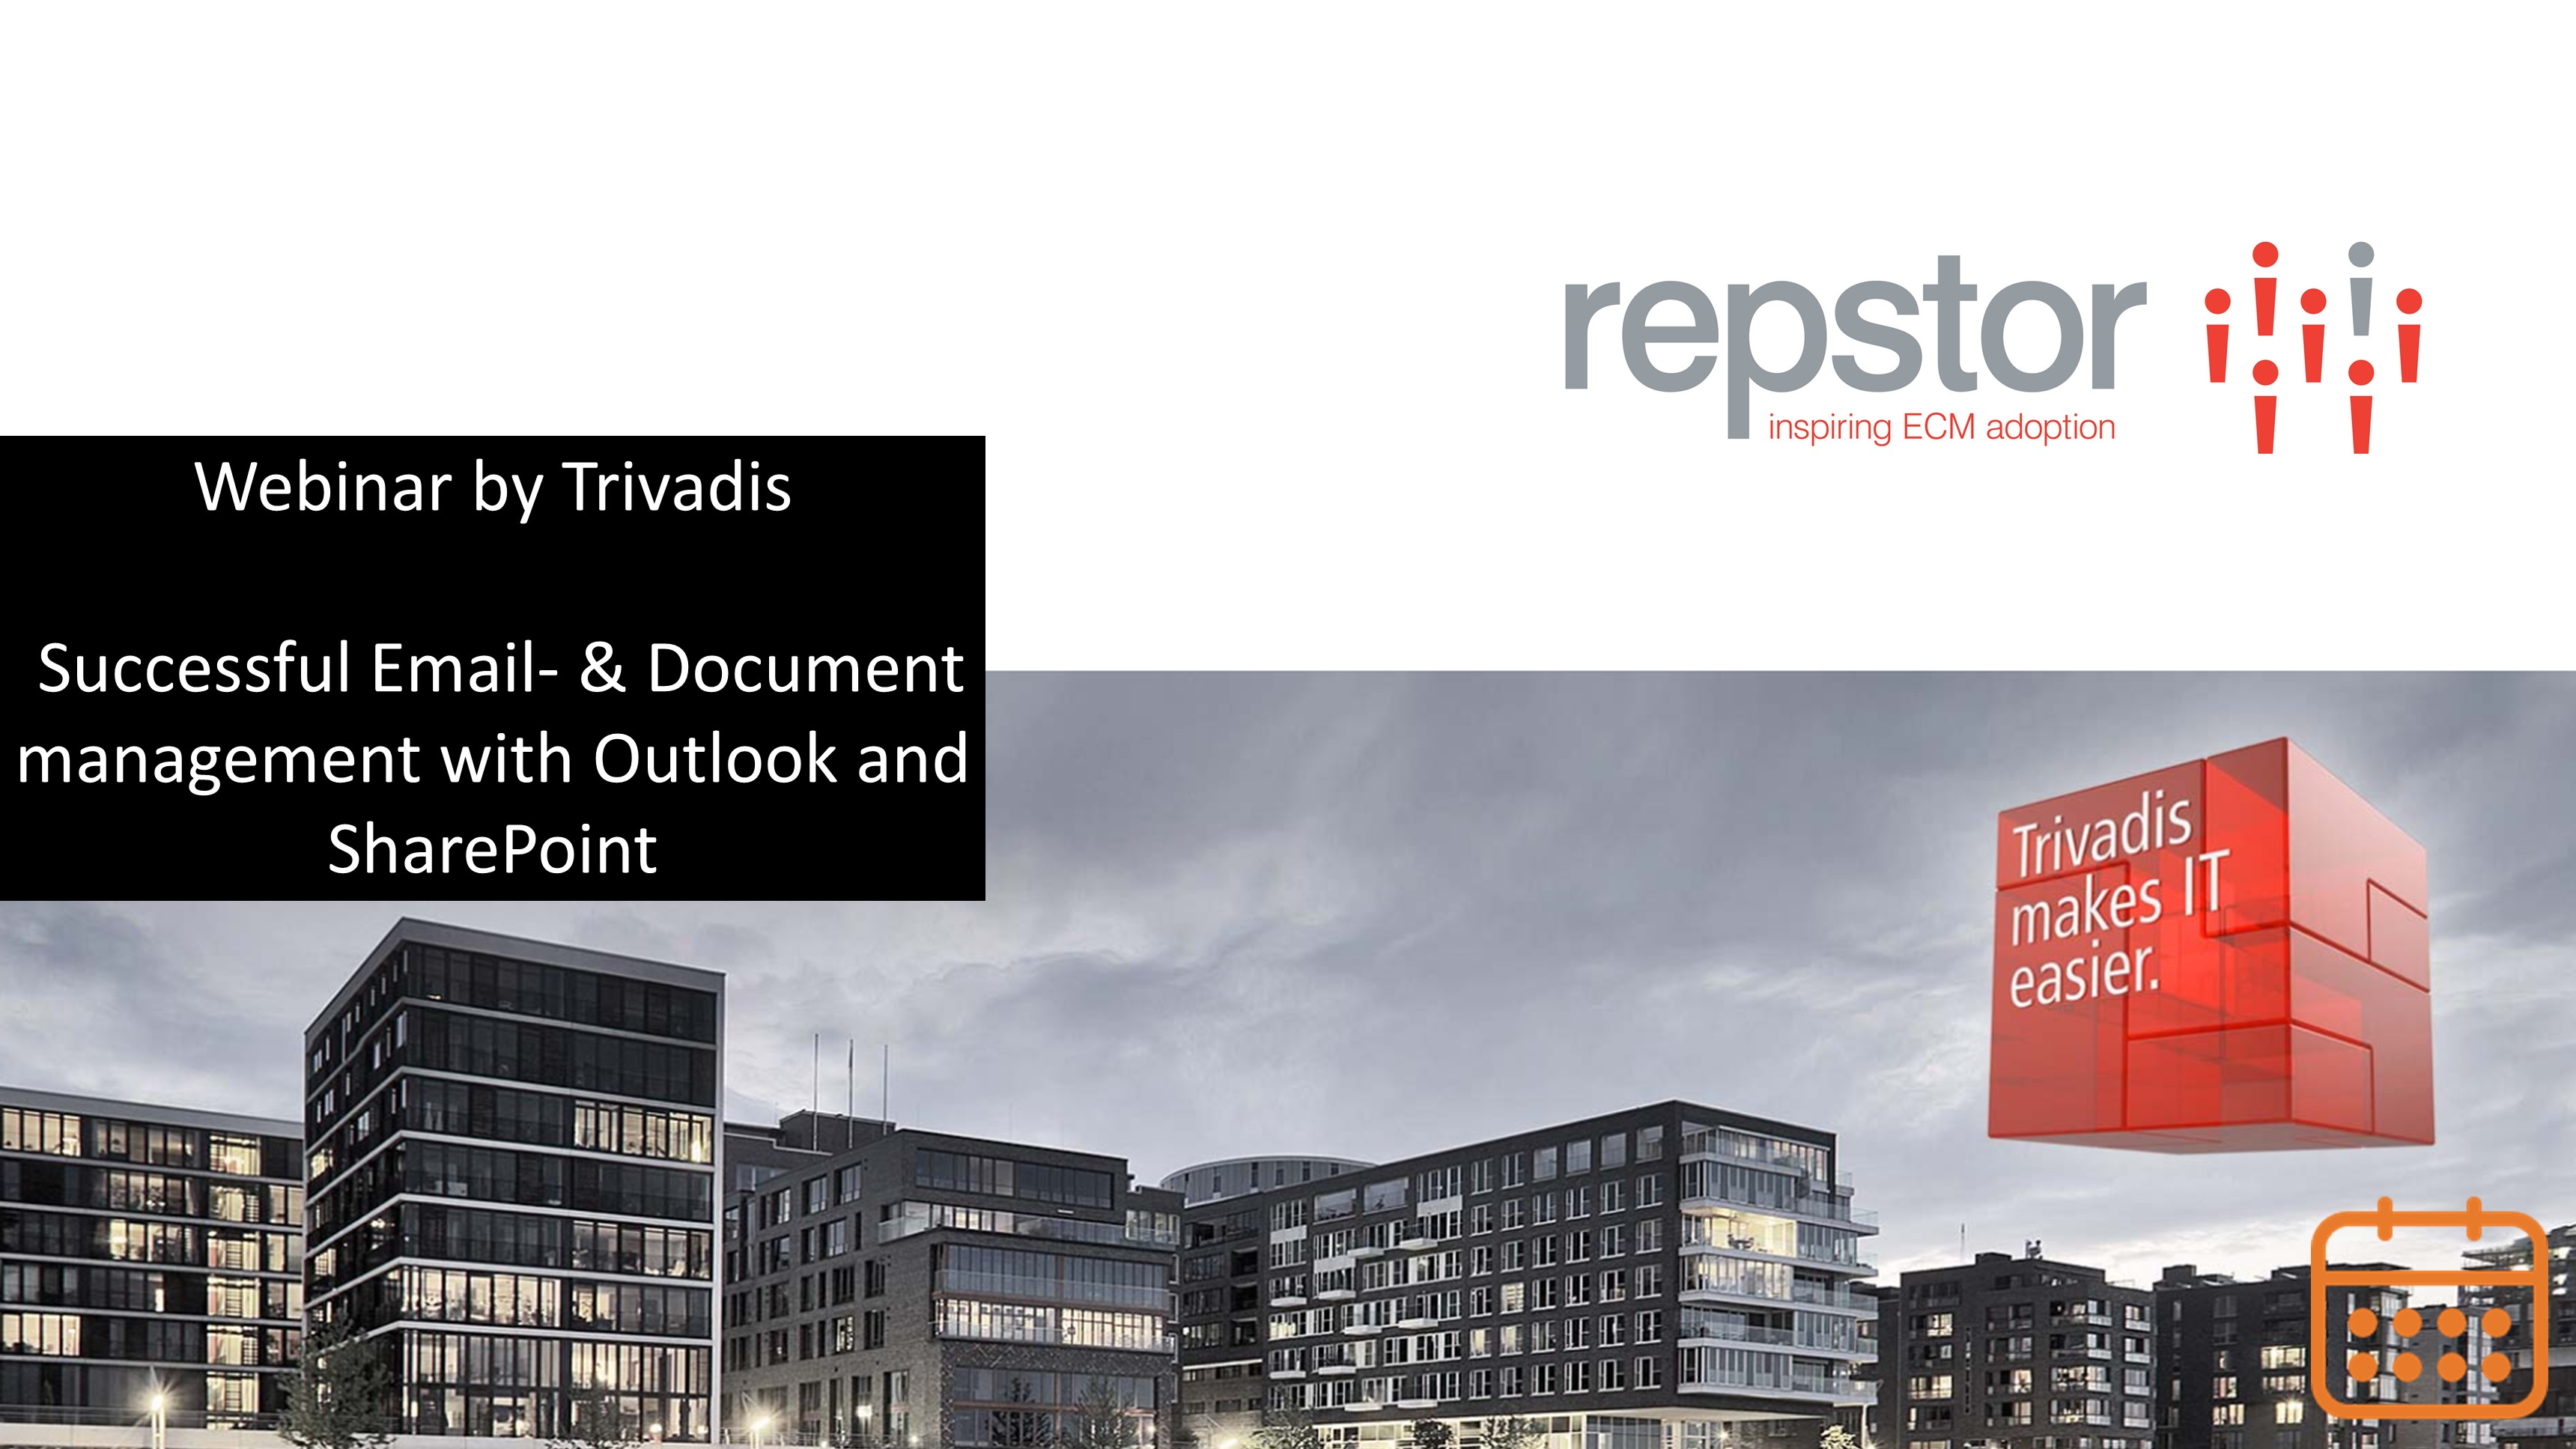 Webinar-by-Trivadis-Successful-Email-and-Document-management-with-Outlook-and-SharePoint